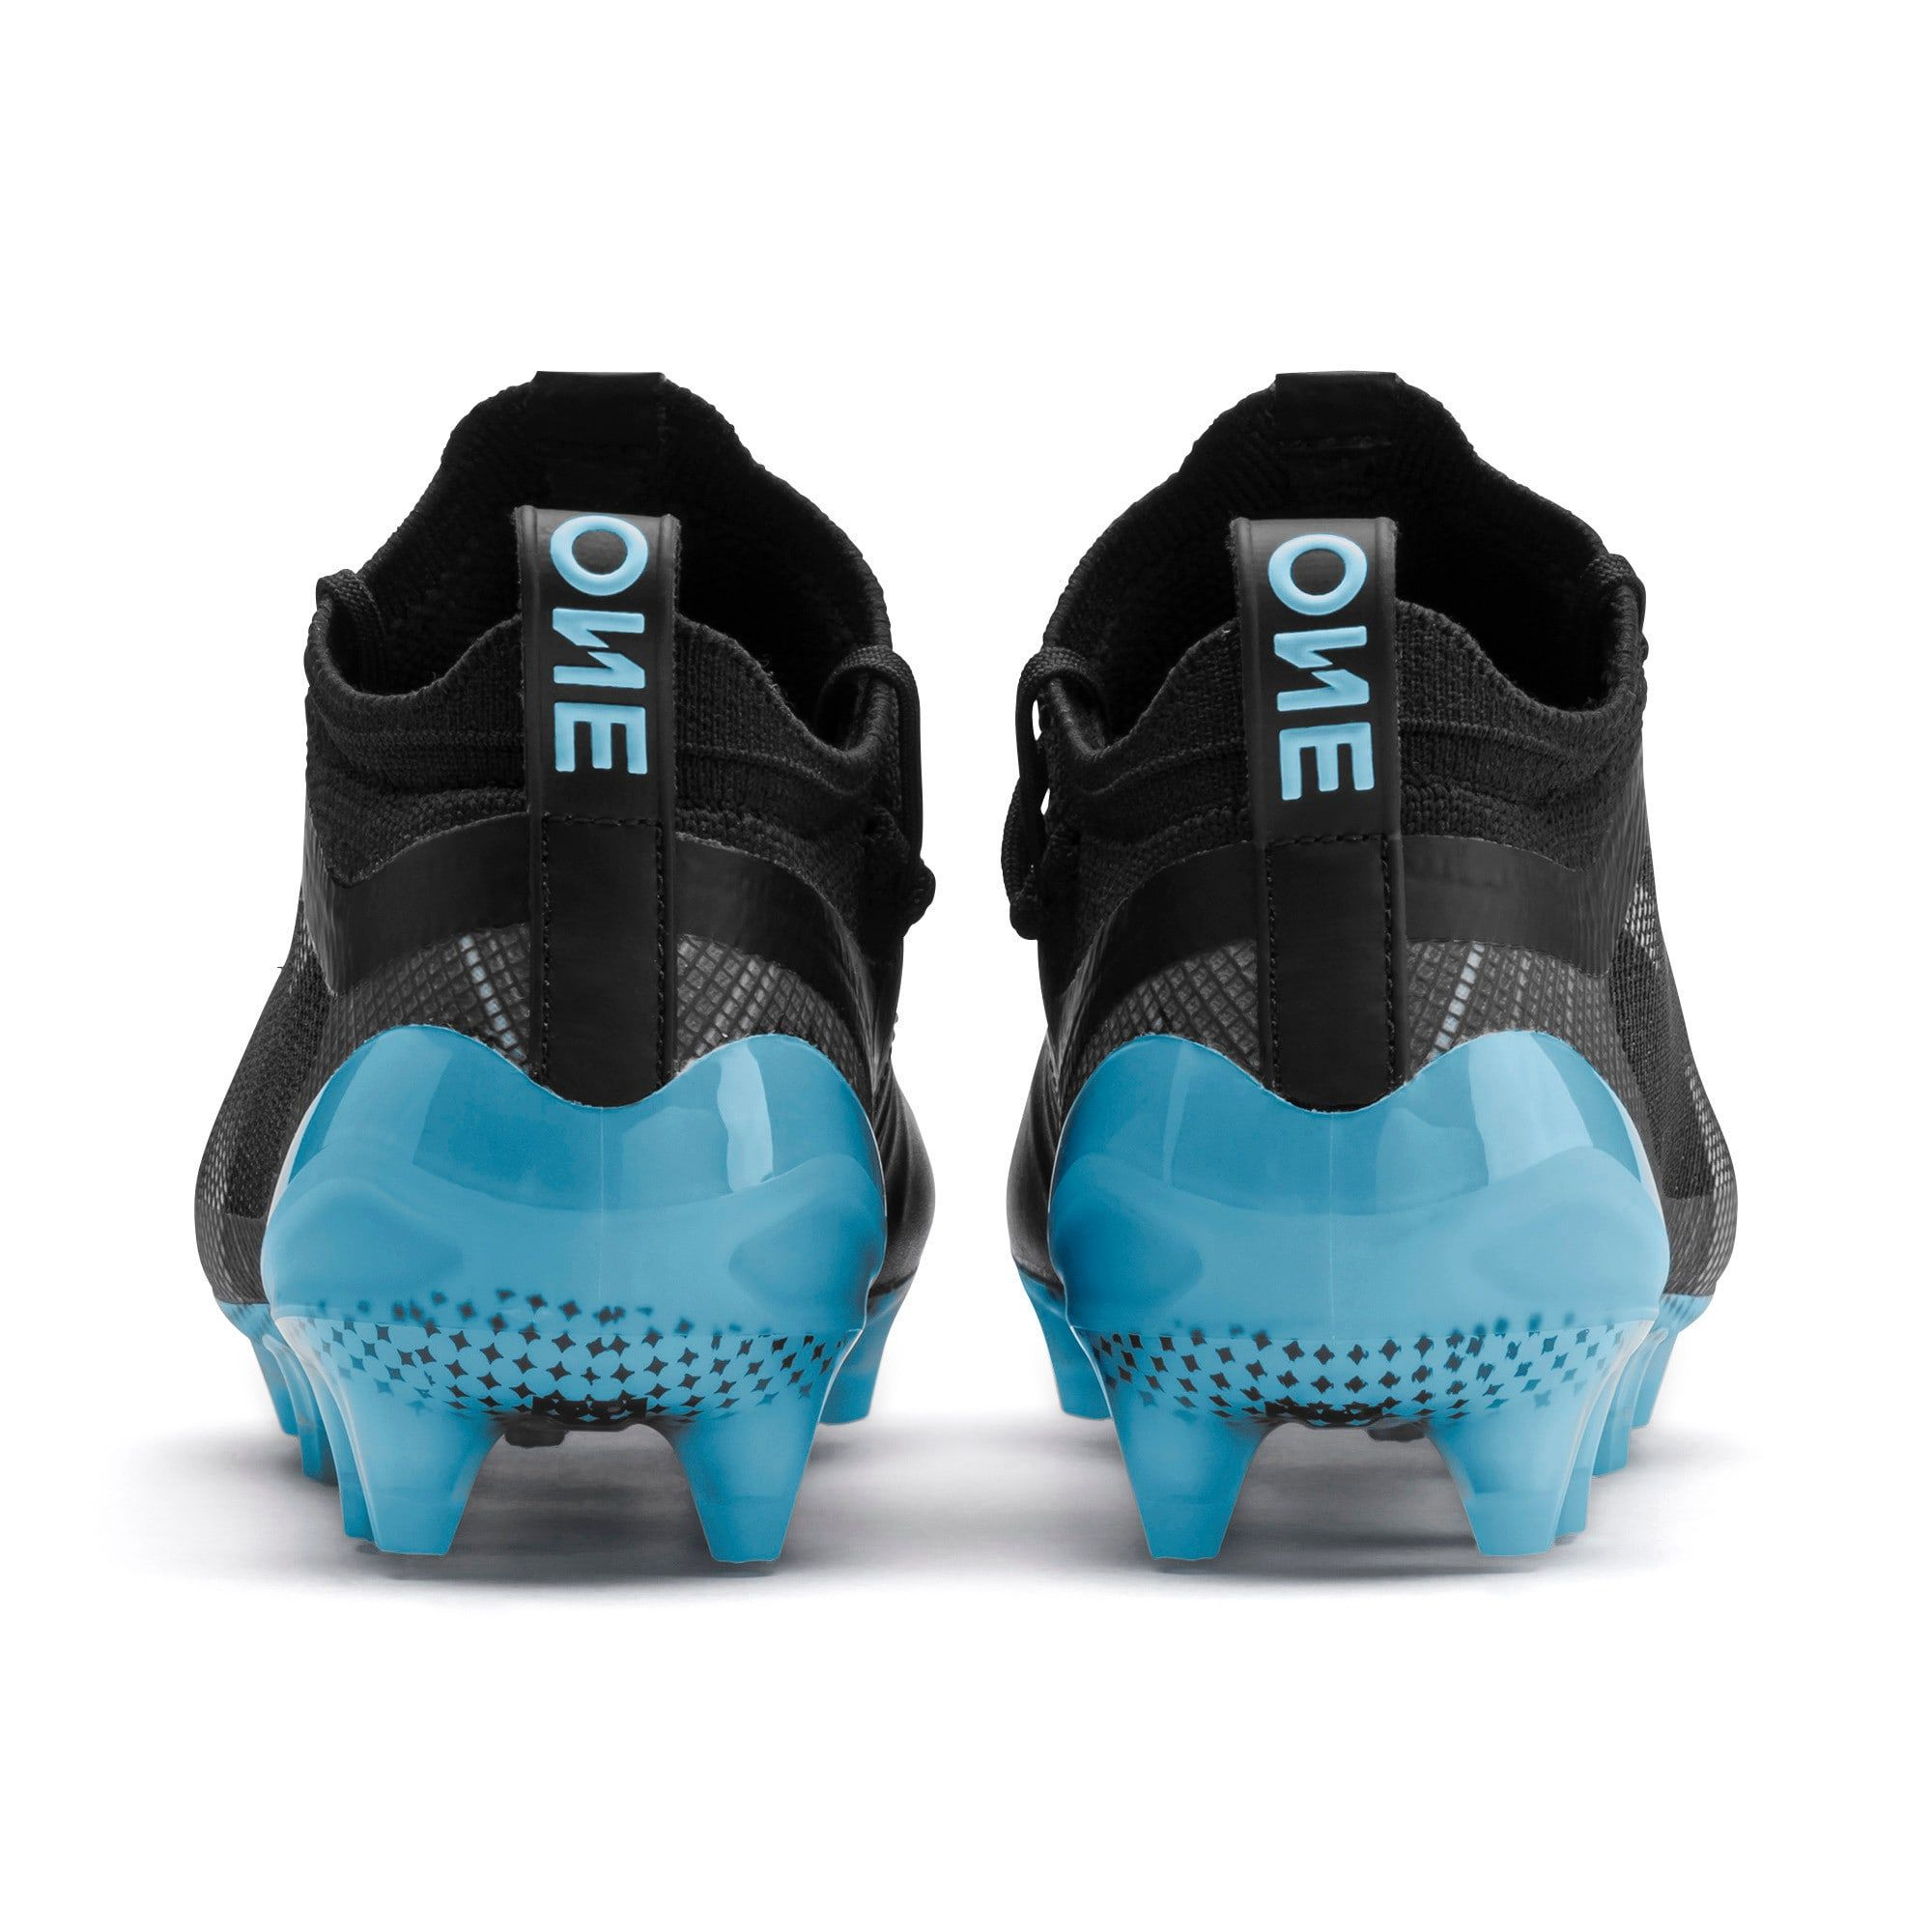 PUMA One 5.1 City Youth Football Boots in Black/Sky Blue ...